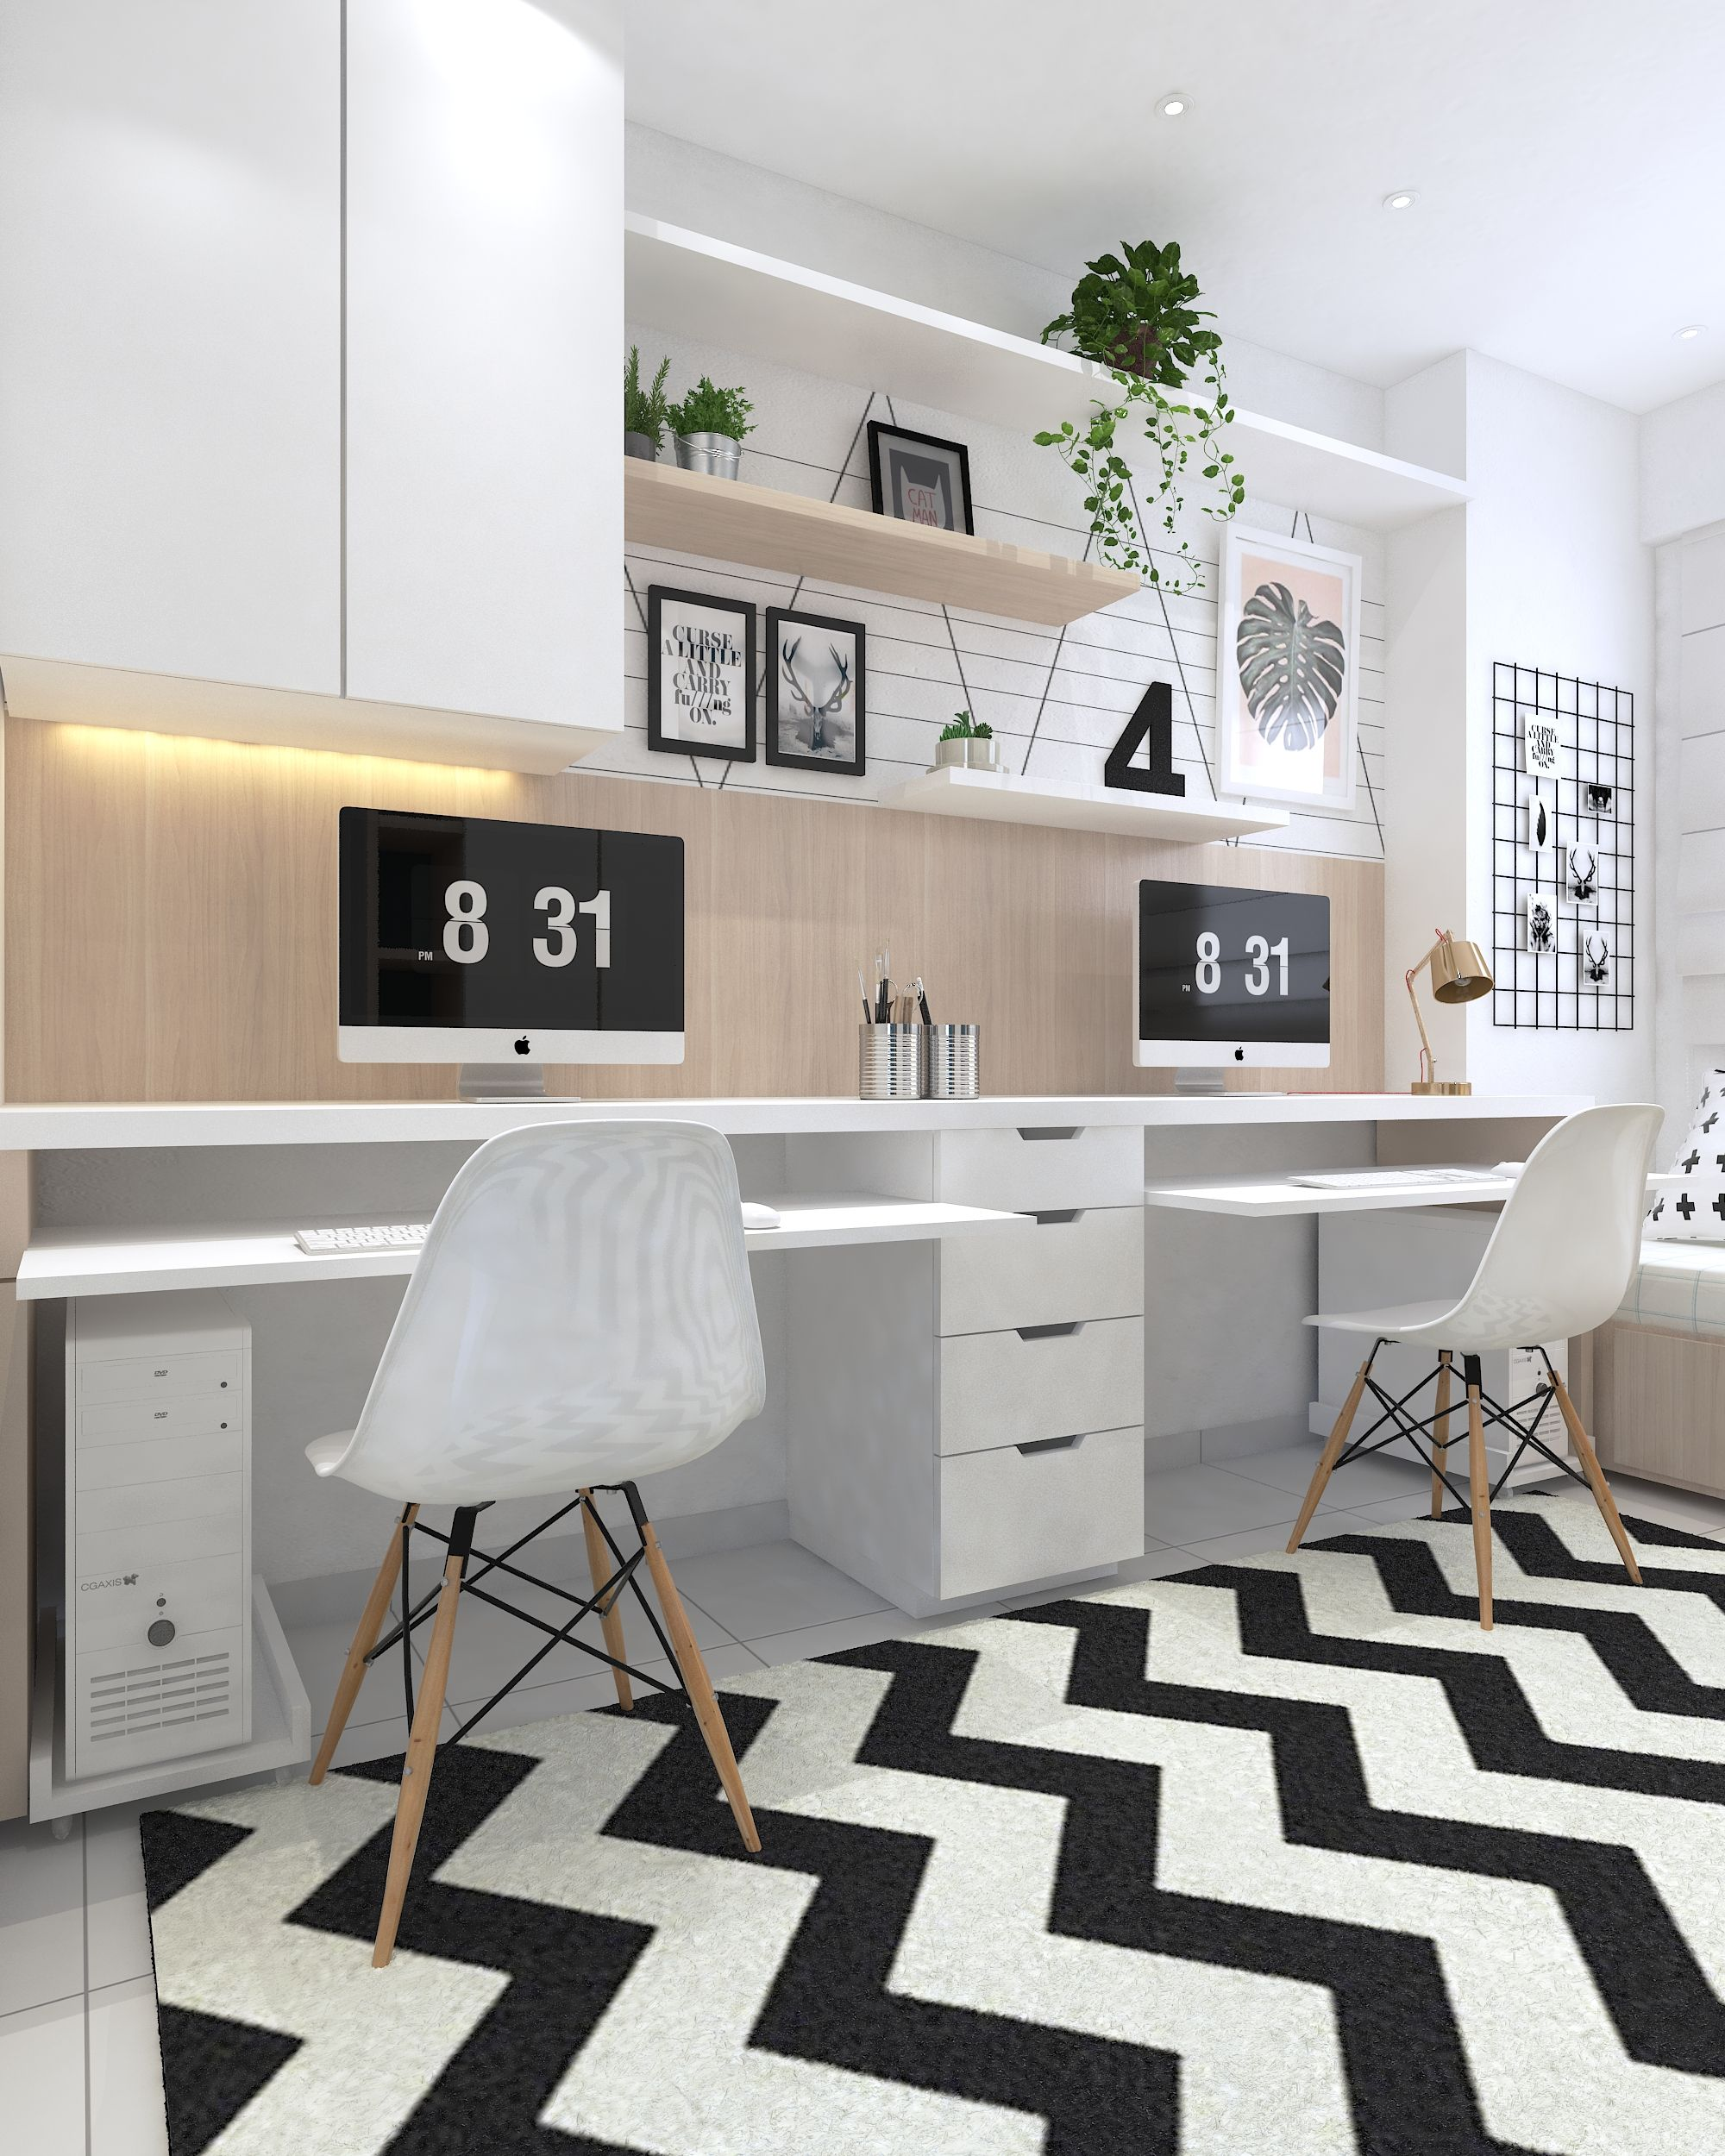 Home office interior ideas home office homeoffice clean  home office  pinterest  desks